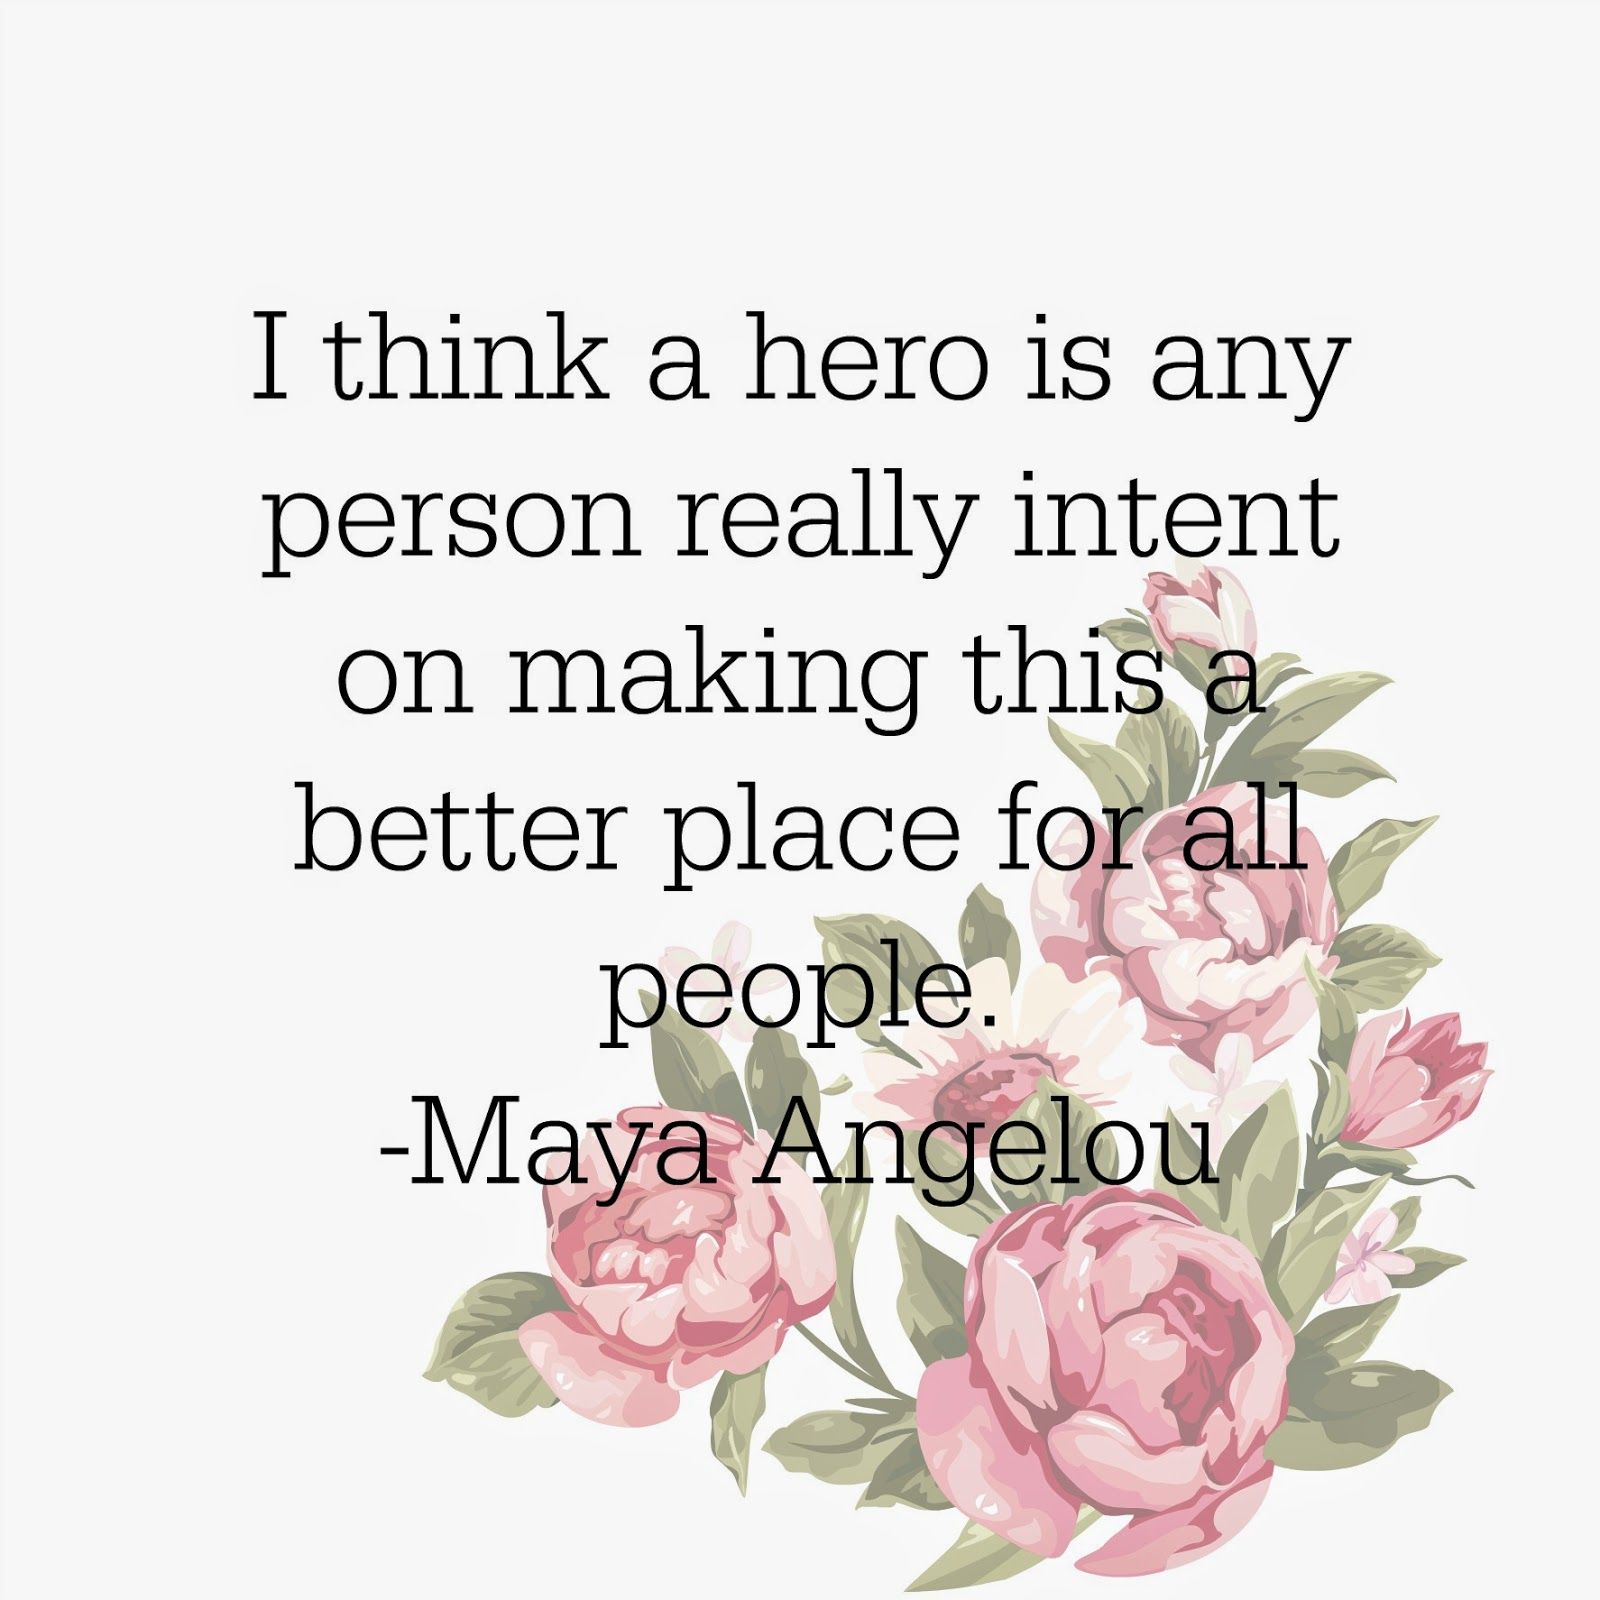 Sparkle maya angelou i think a hero is any person really intent sparkle maya angelou i think a hero is any person really intent on making this kristyandbryce Images